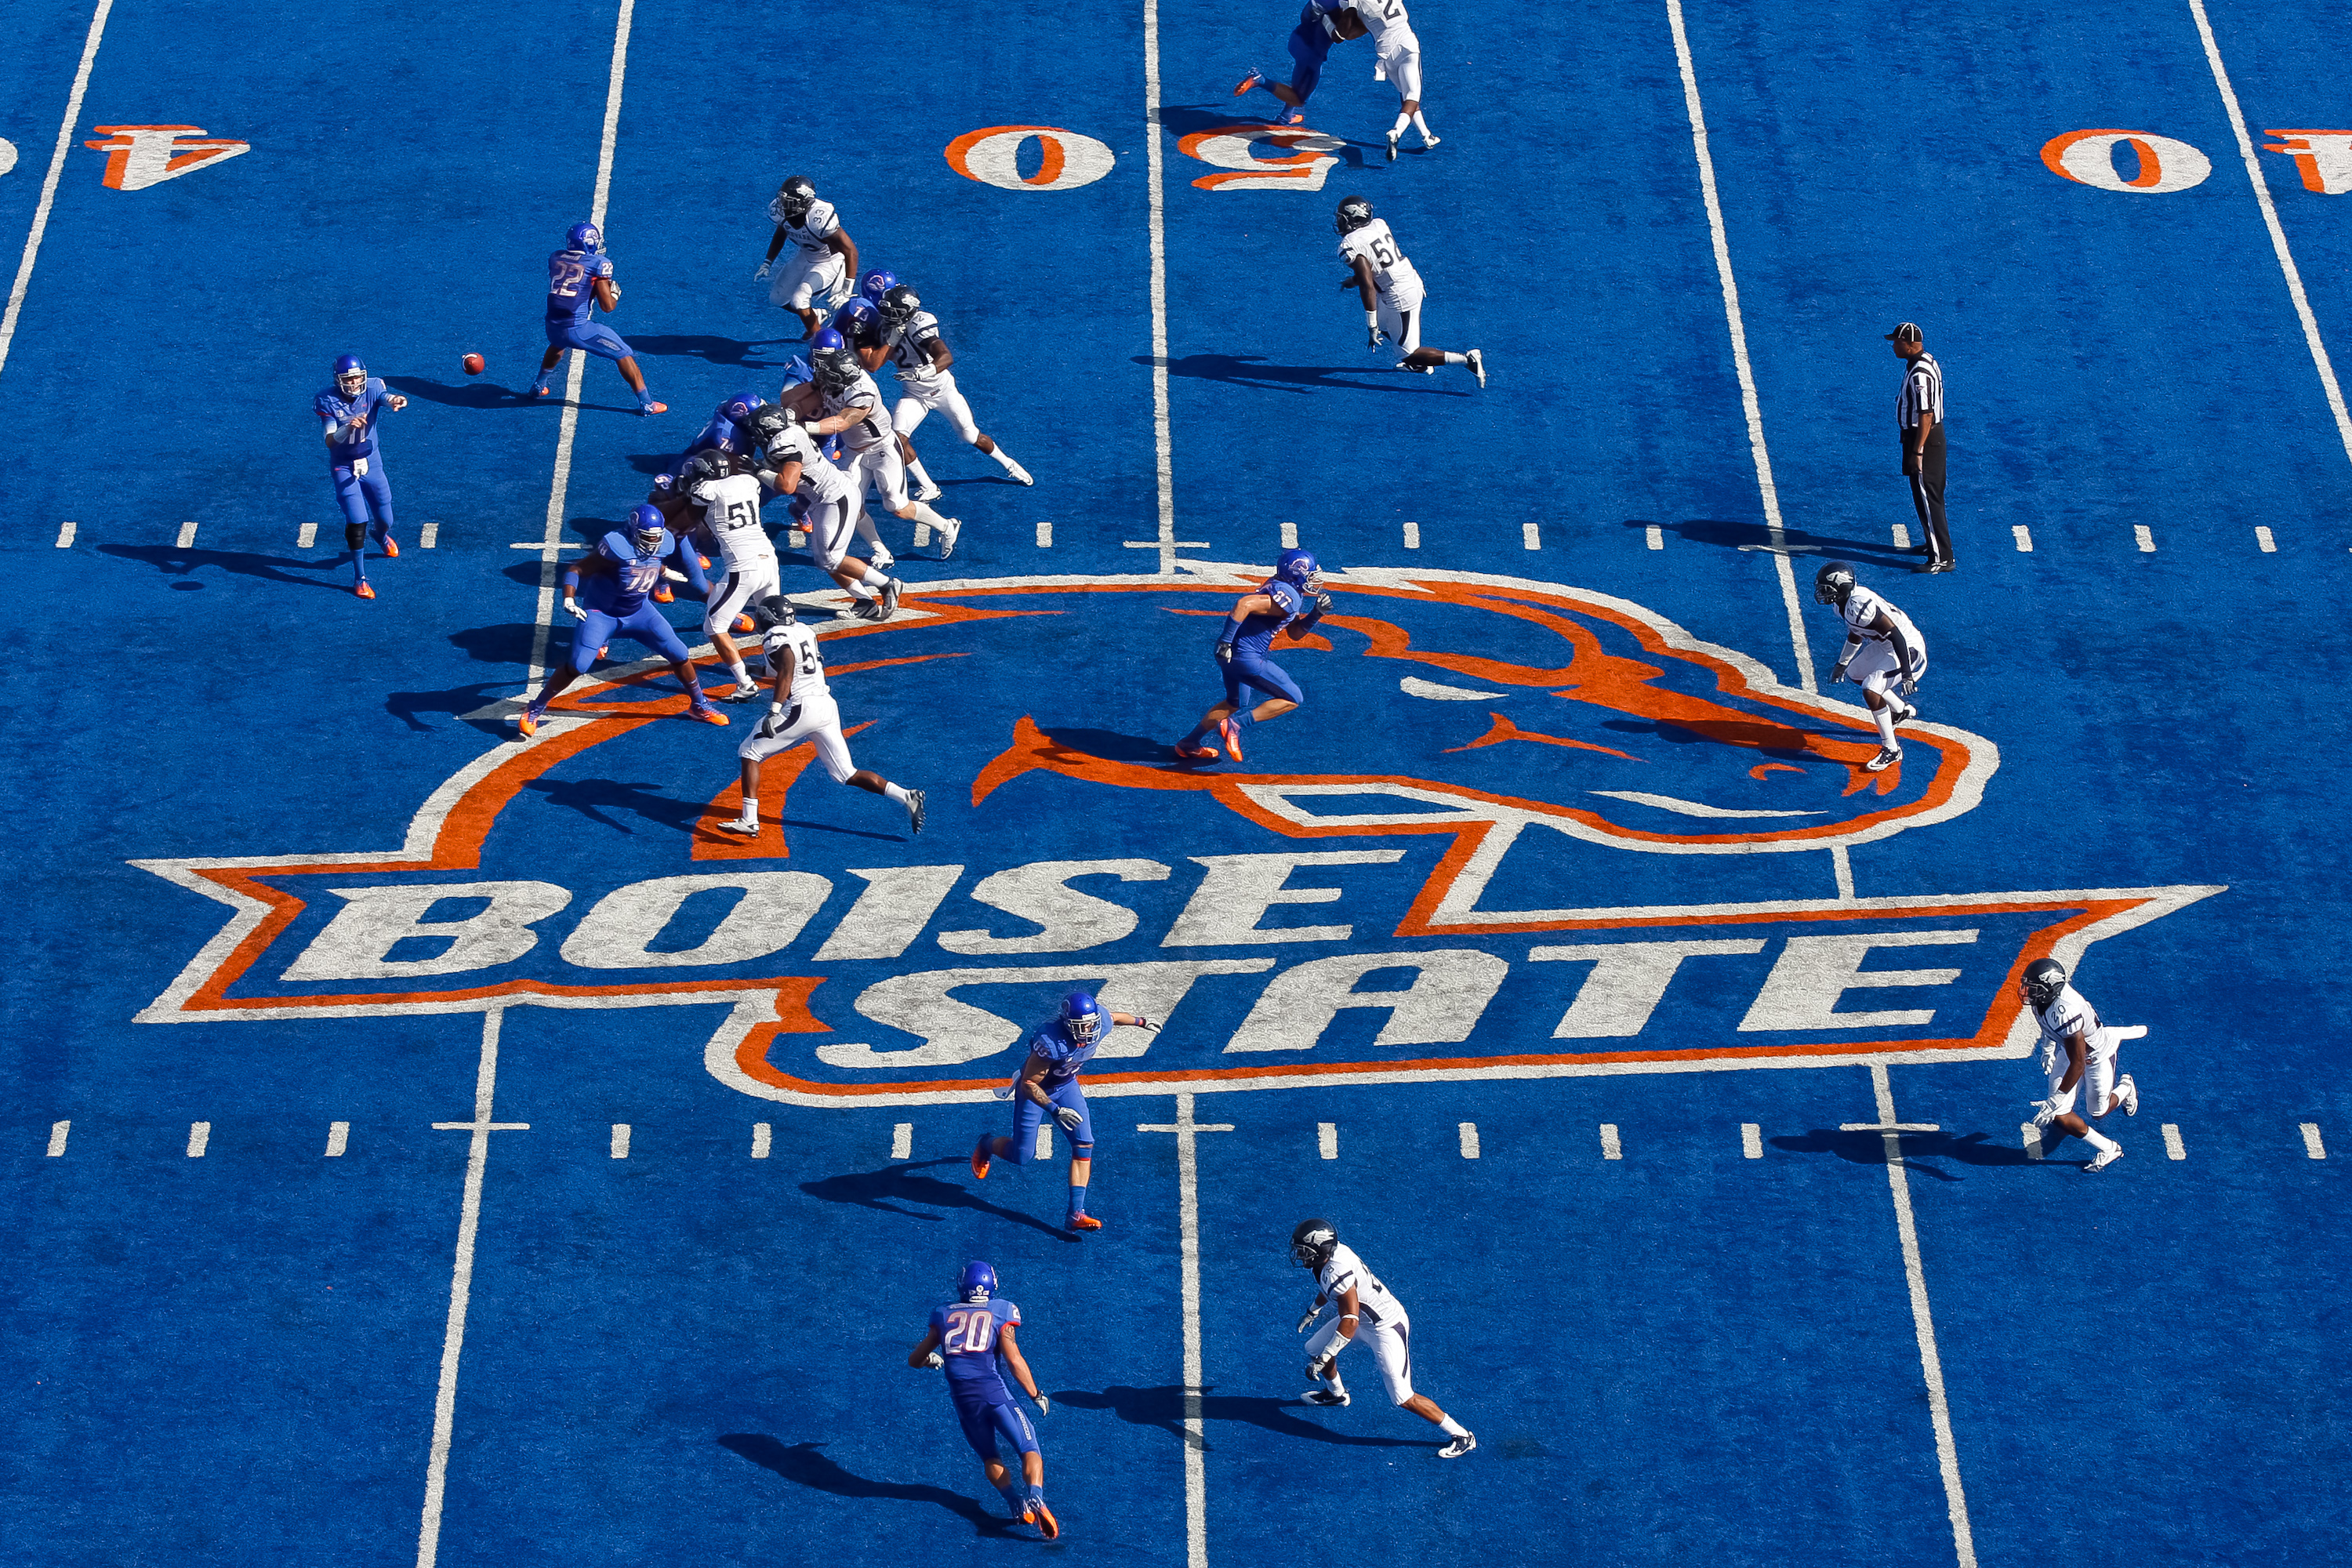 Kellen Moore #11 of the Boise State Broncos (L) passes against the Nevada Wolf Pack at Bronco Stadium in Boise, Idaho on Oct. 1, 2011.